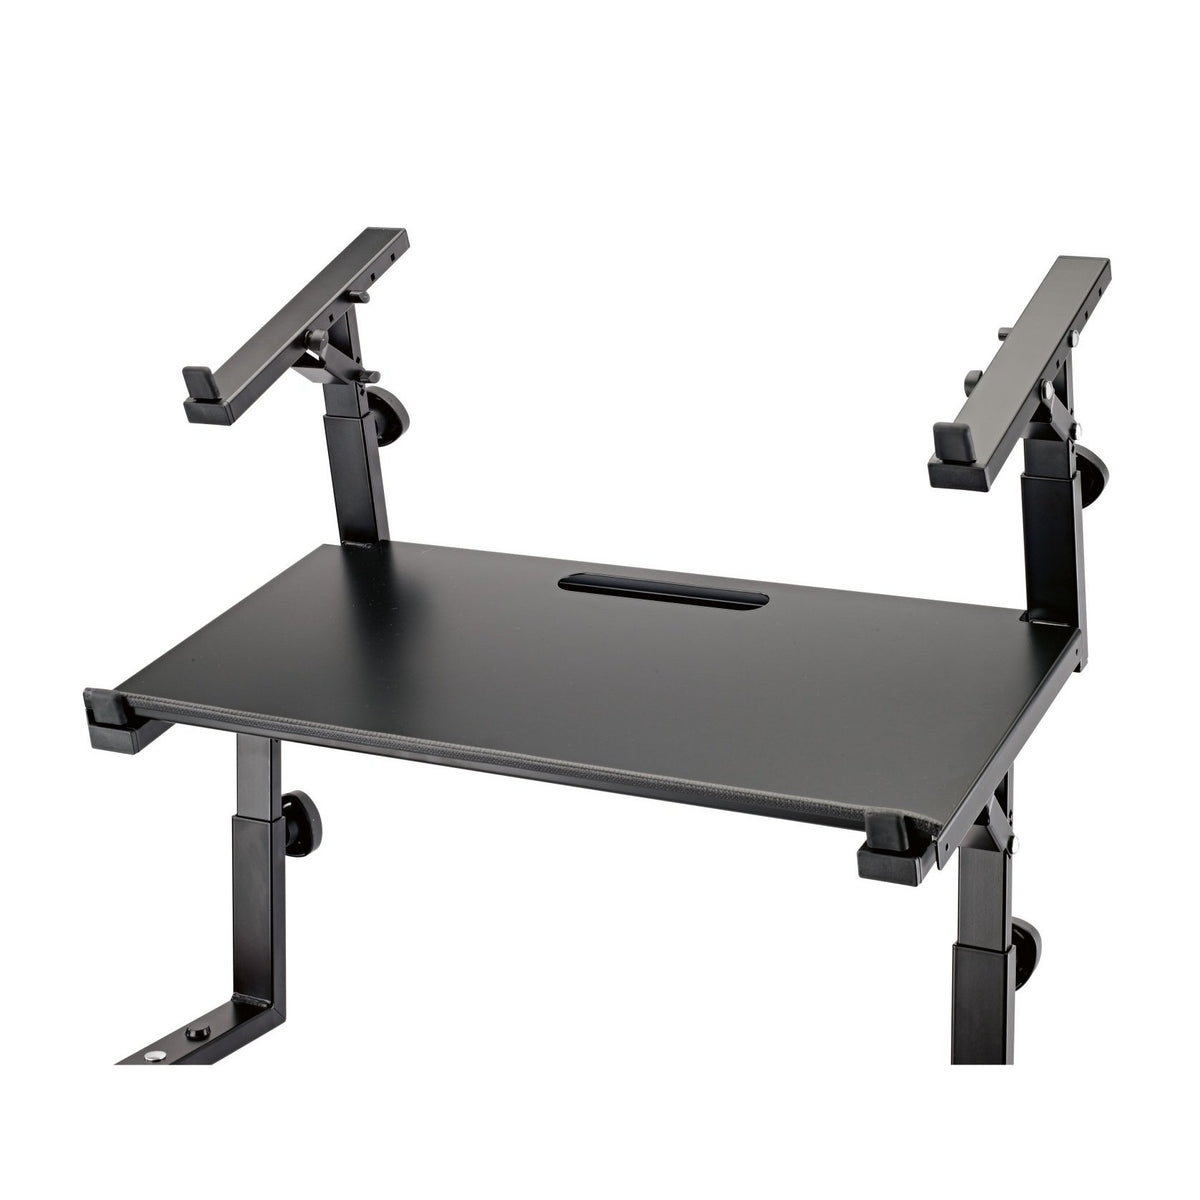 König & Meyer - 18819 Controller Keyboard Tray for <Omega> Keyboard Stand-Instrument Stand-König & Meyer-Music Elements